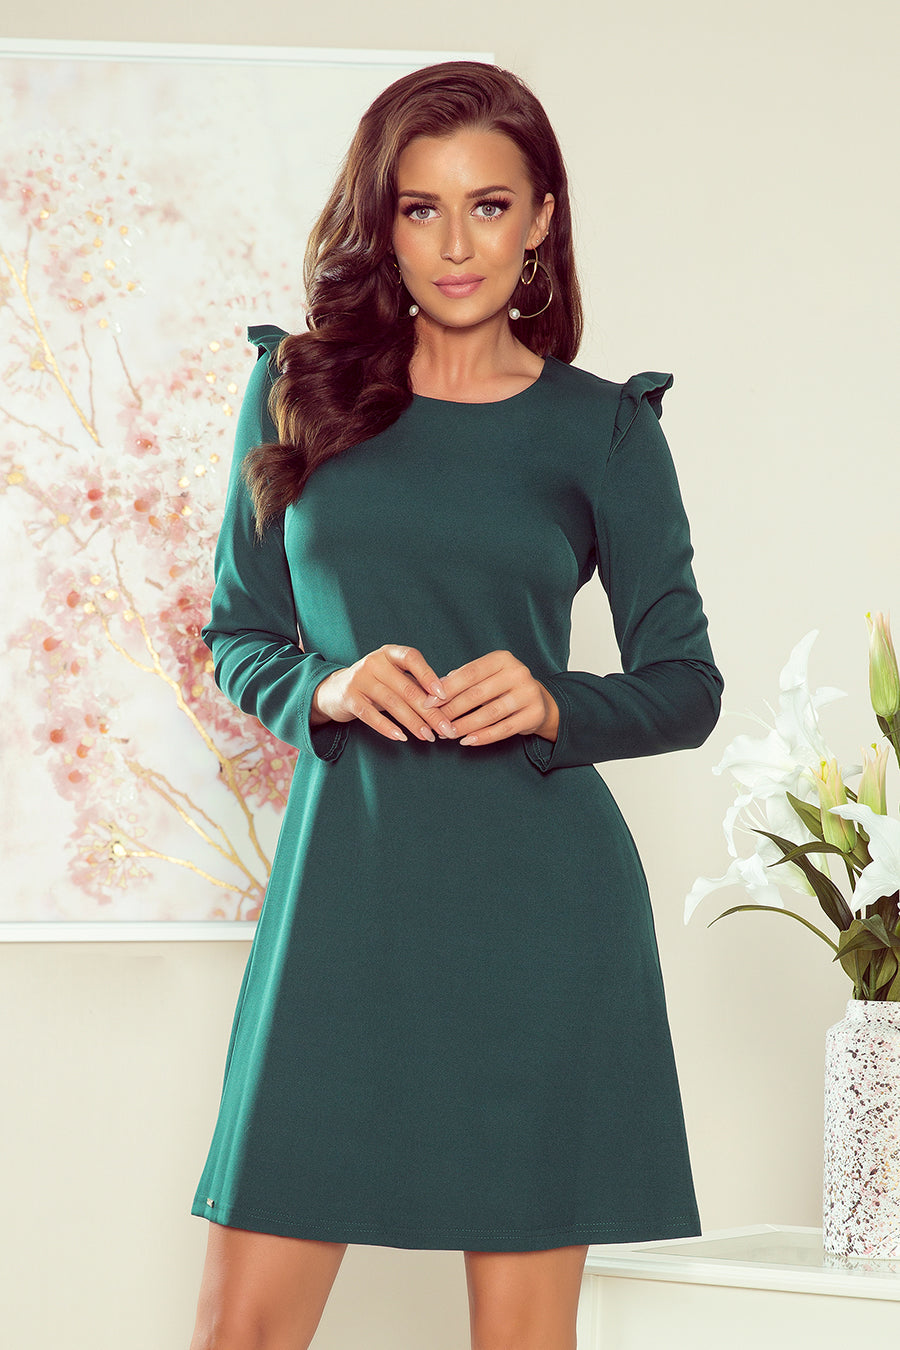 Numoco 264-1 NELL Trapezoidal dress with frills - green